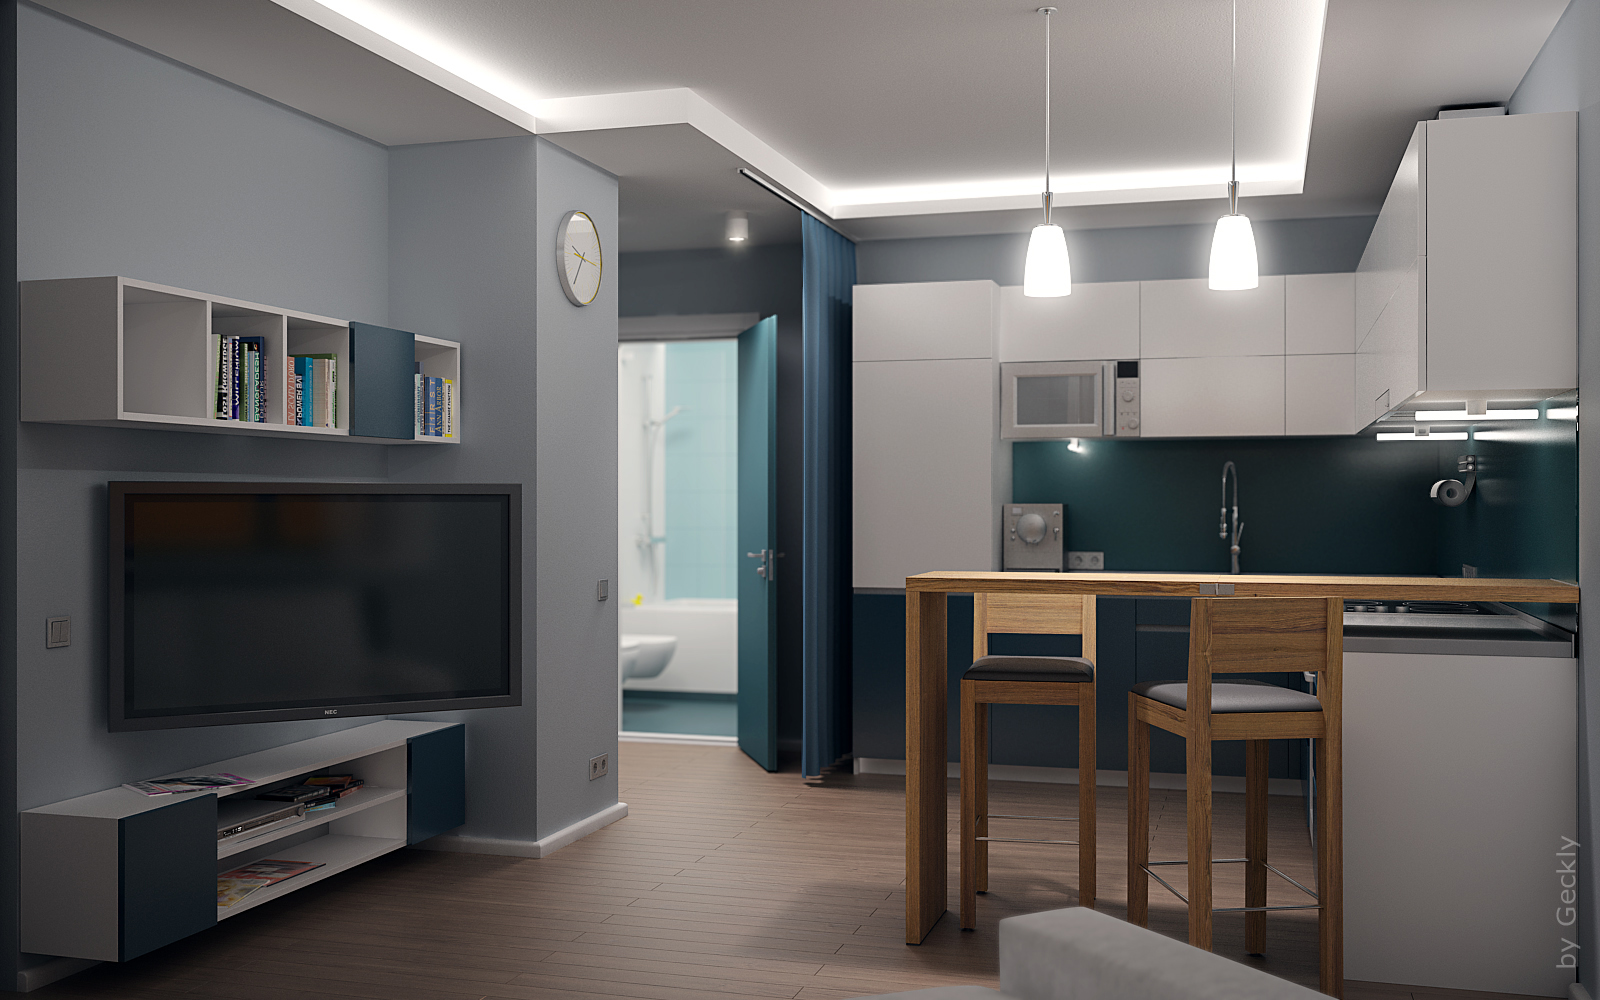 Small flat 003 by geckly on deviantart Flat interior design images